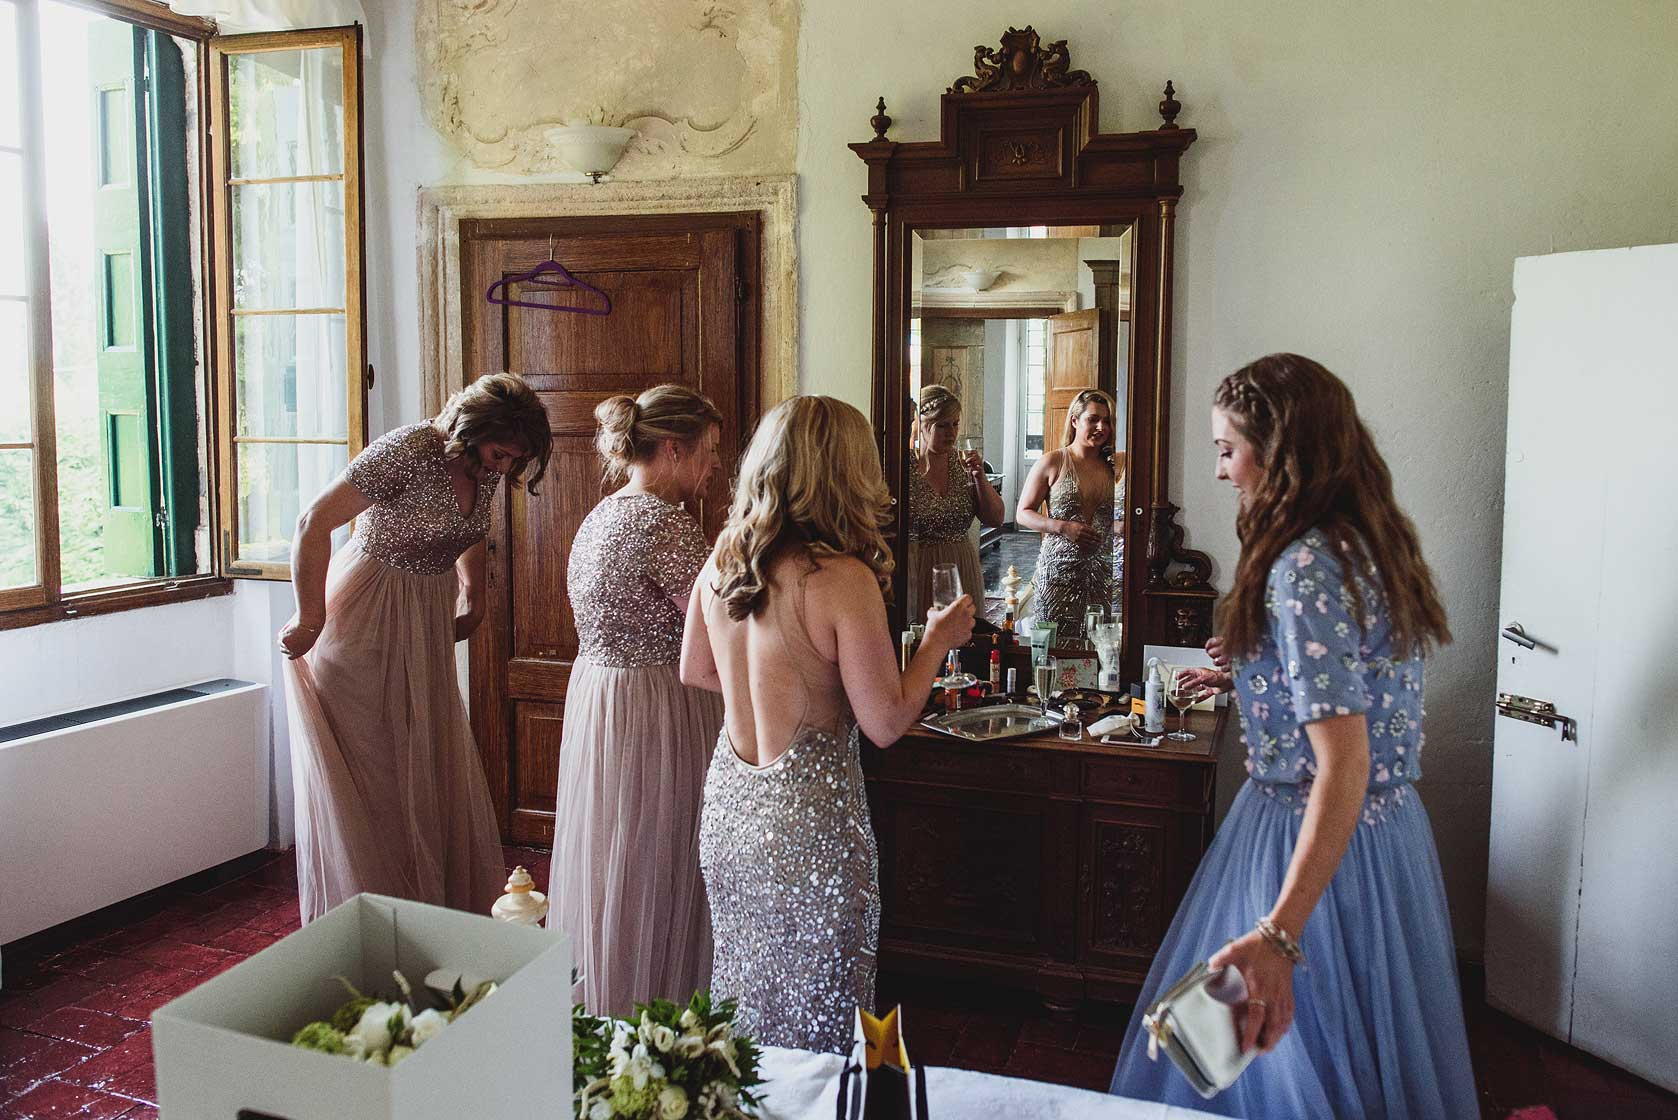 Reportage Wedding Photography at Villa La Zambonina